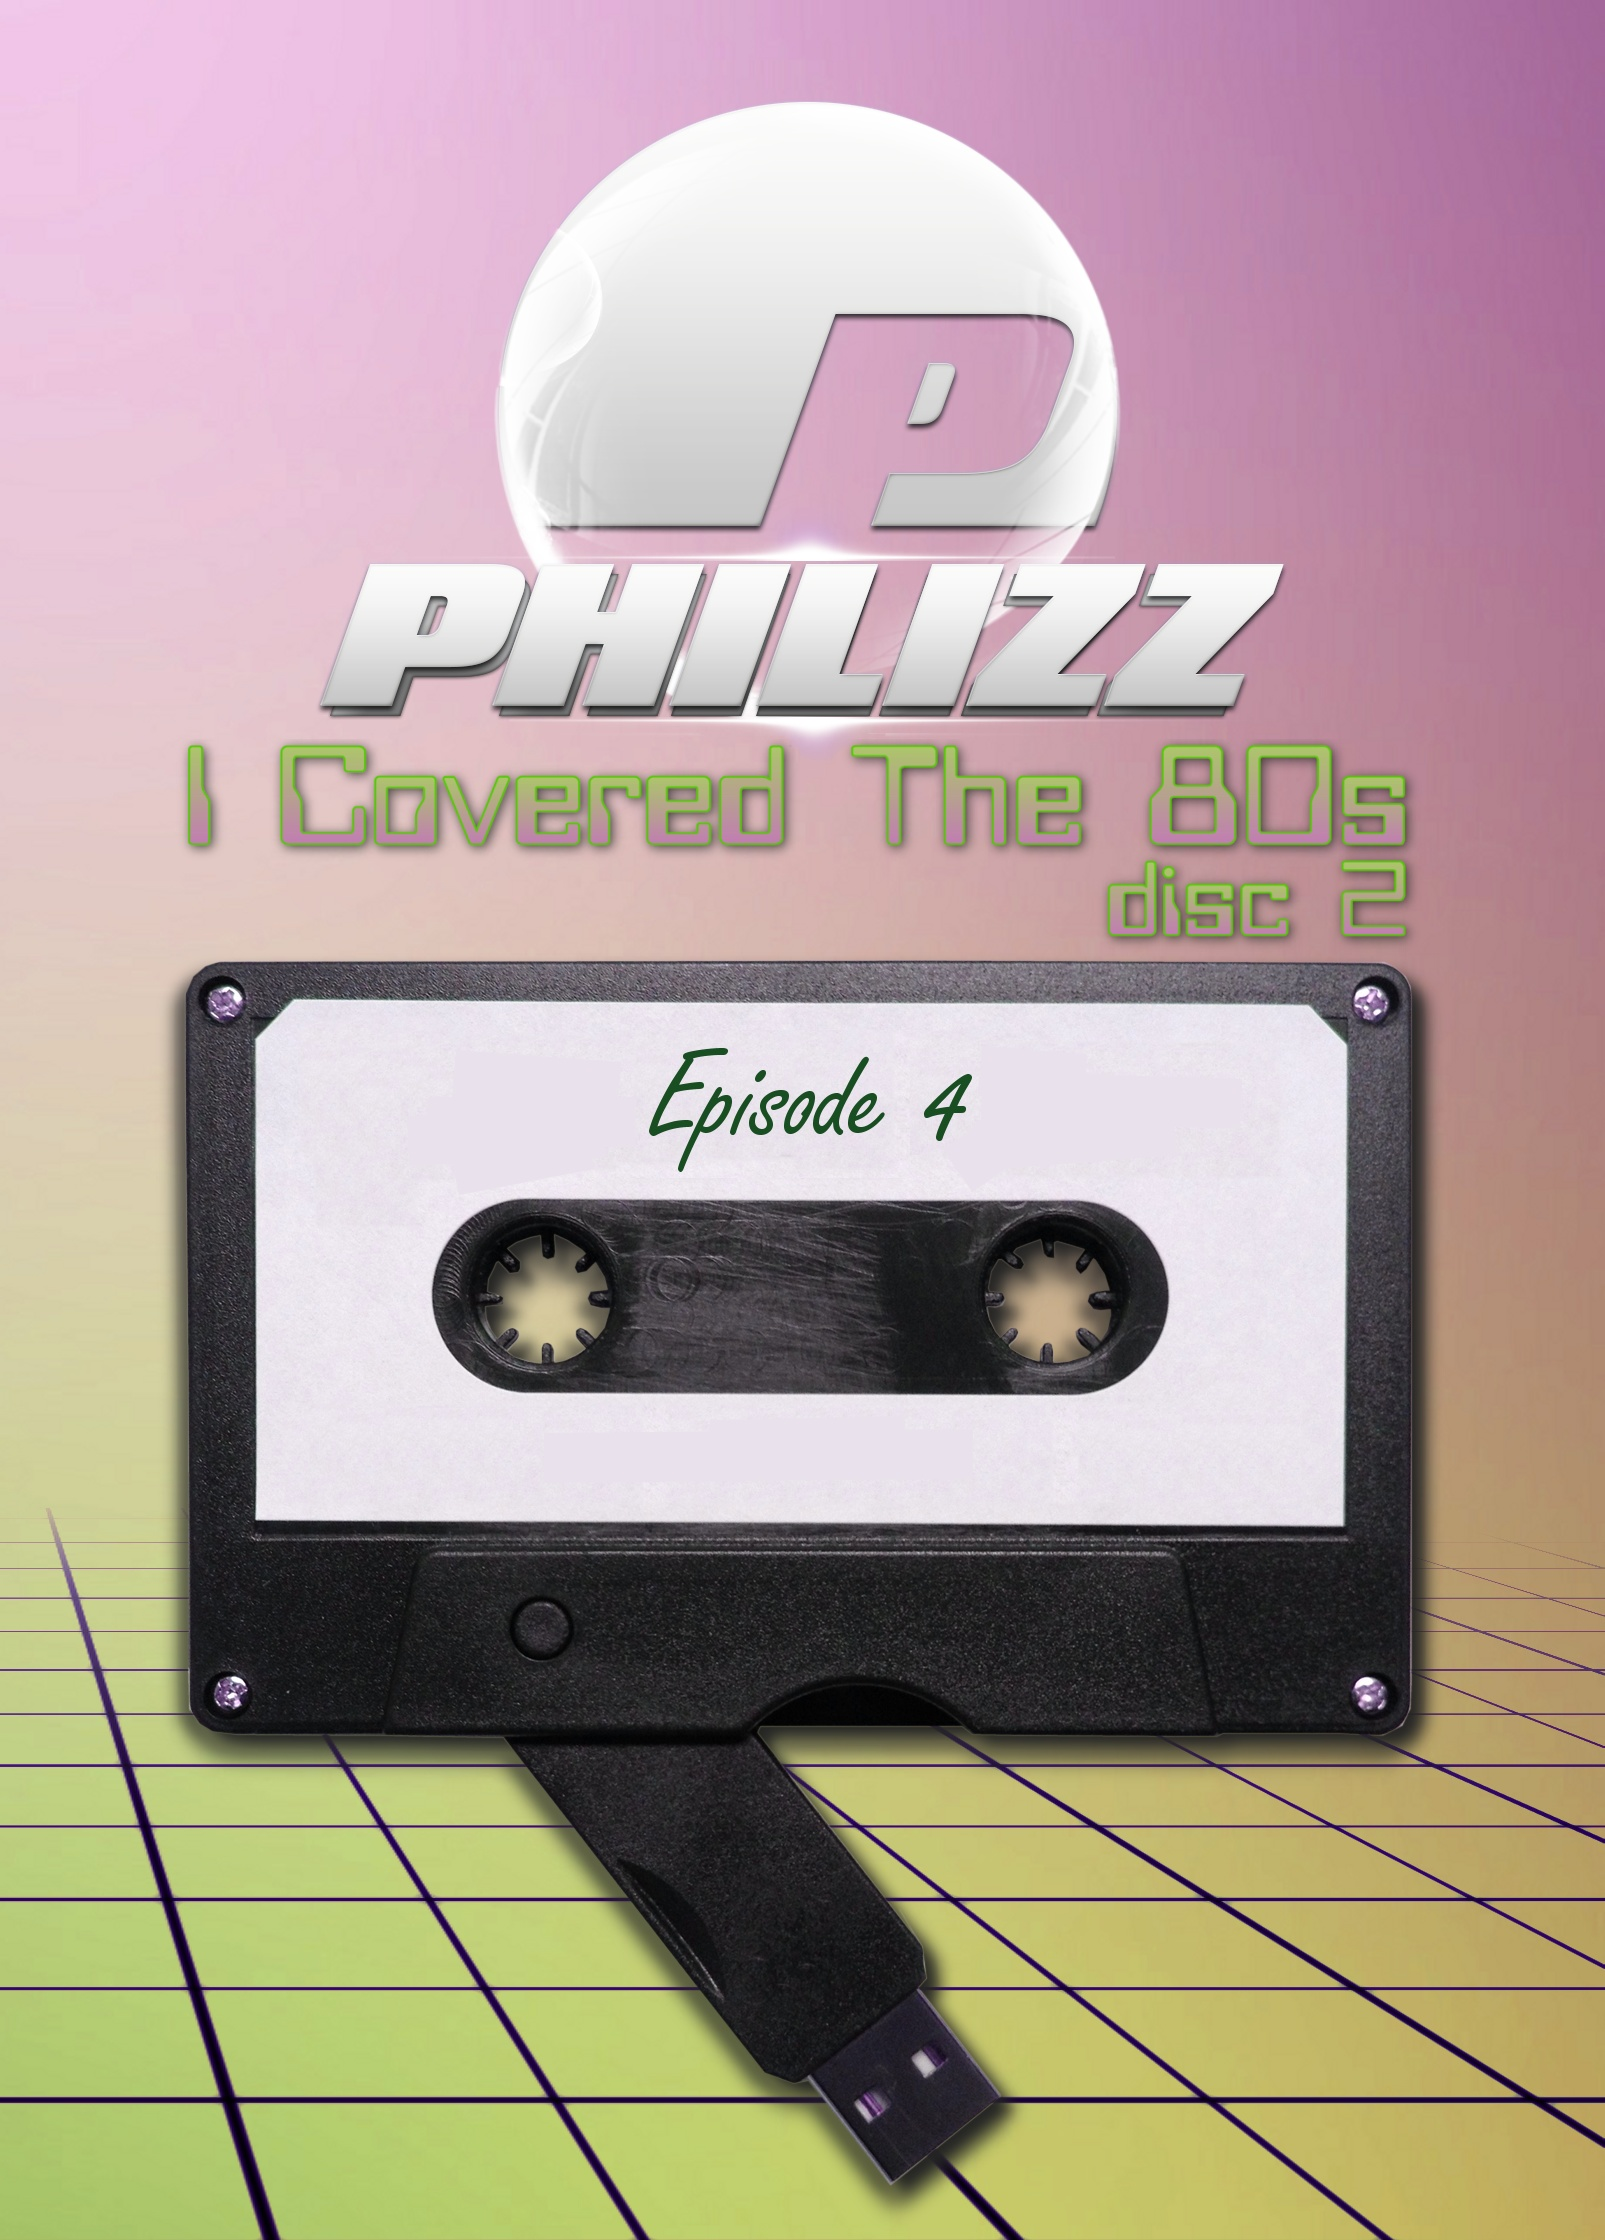 Philizz: I Covered The 80s Vol. 04